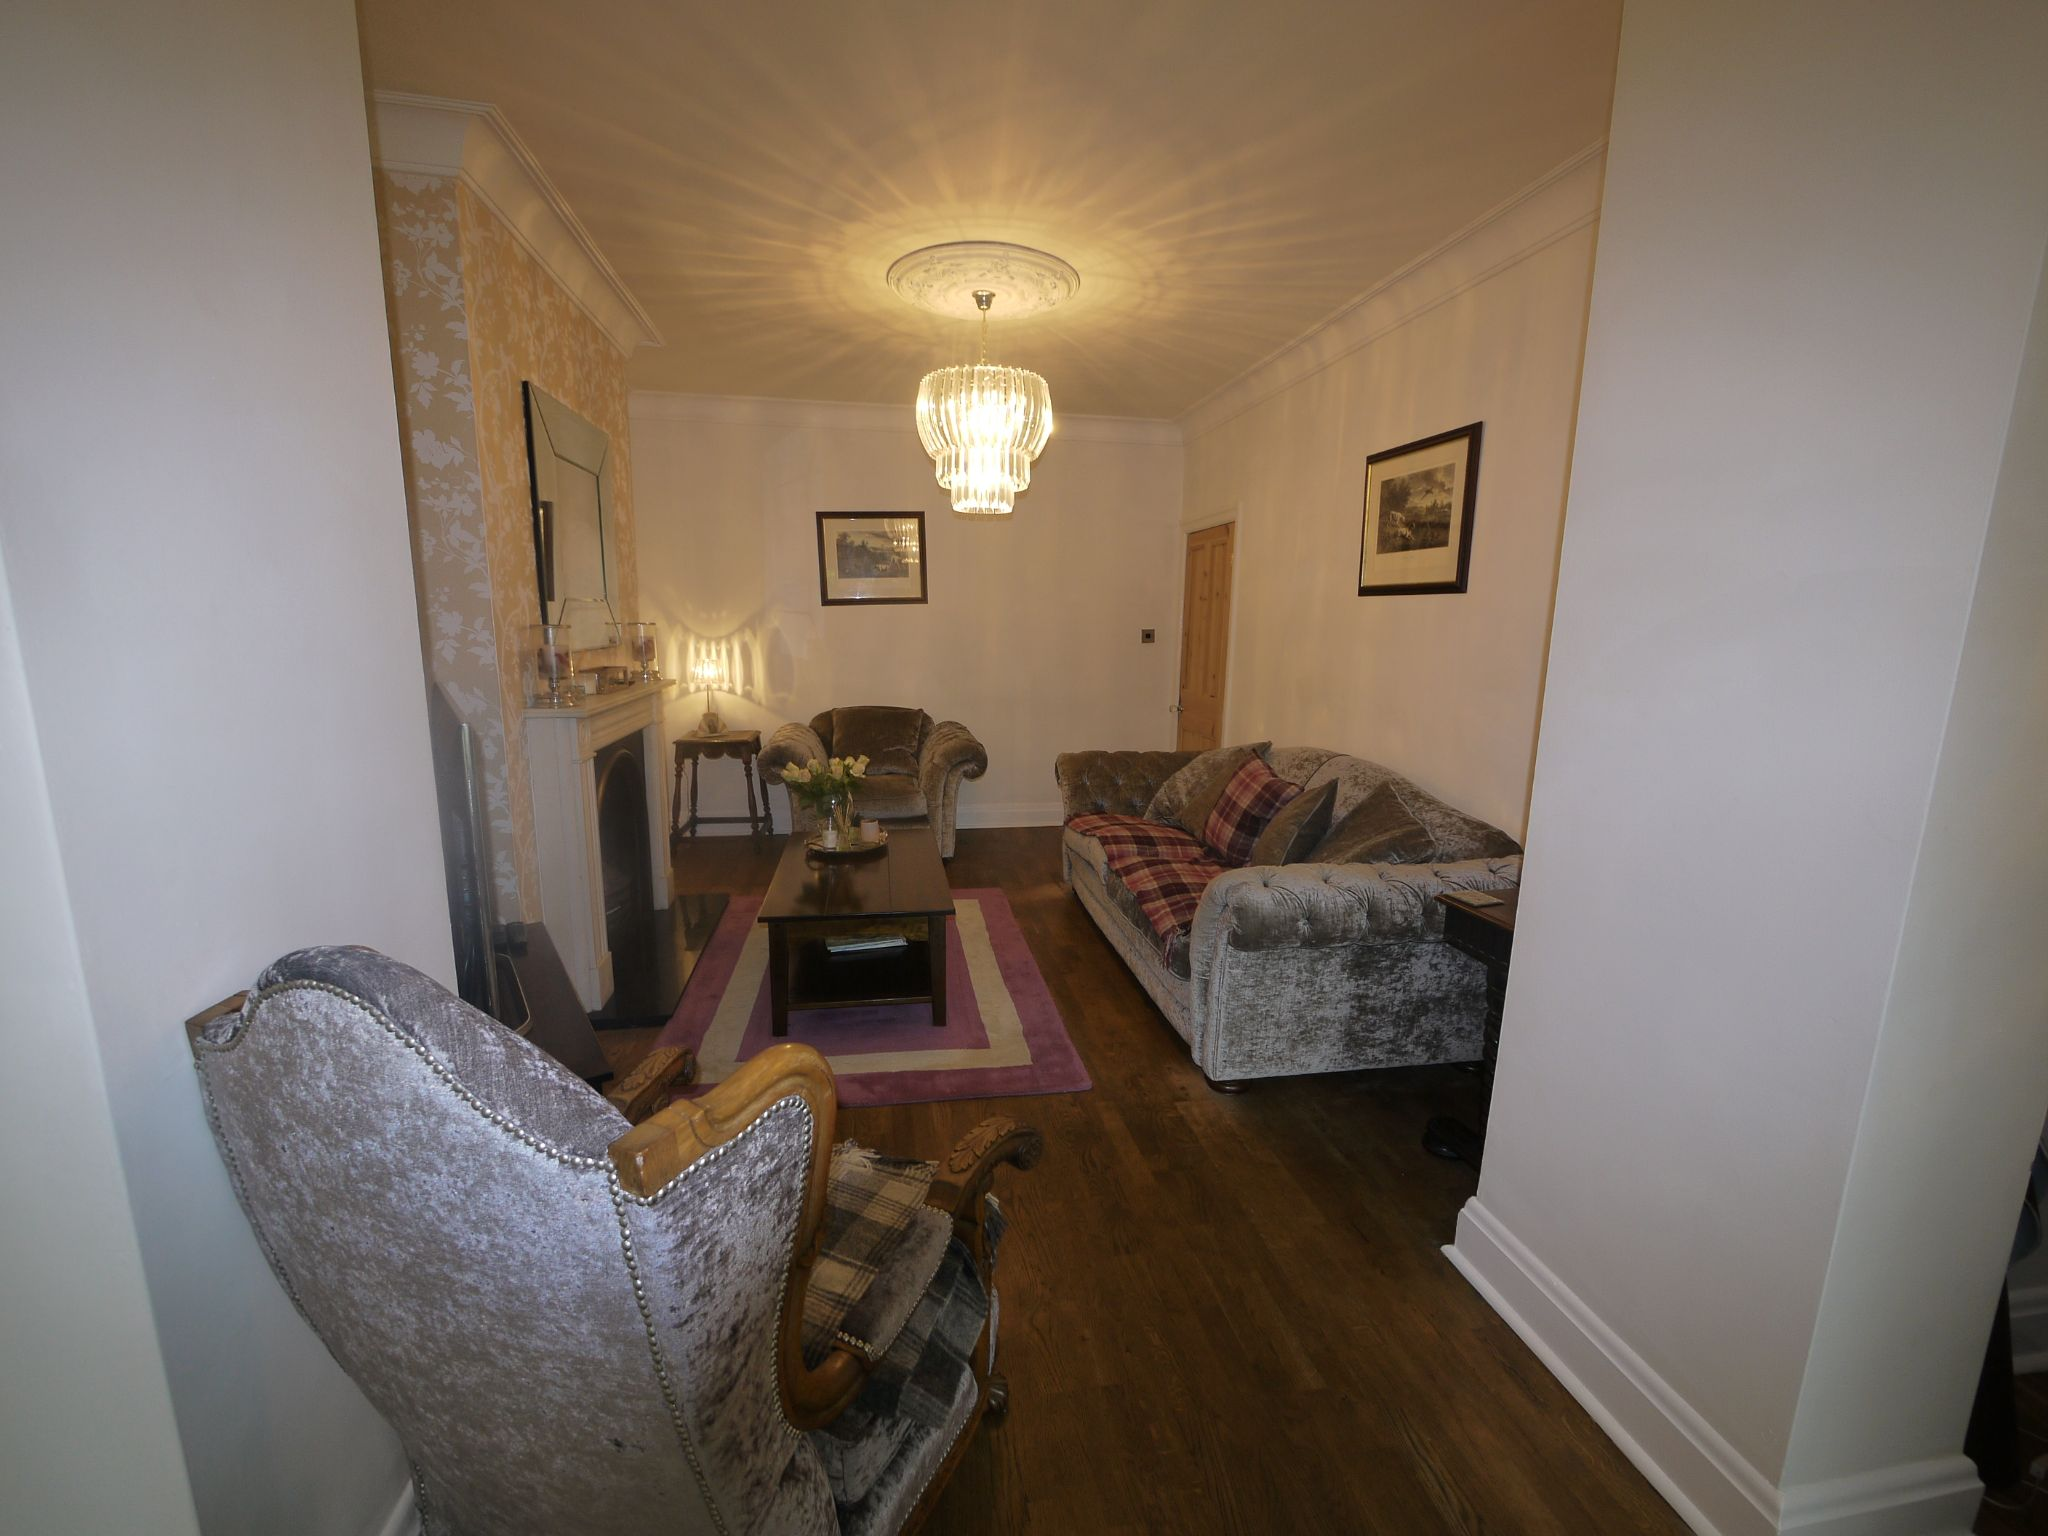 4 bedroom semi-detached house SSTC in Halifax - Lounge 3.